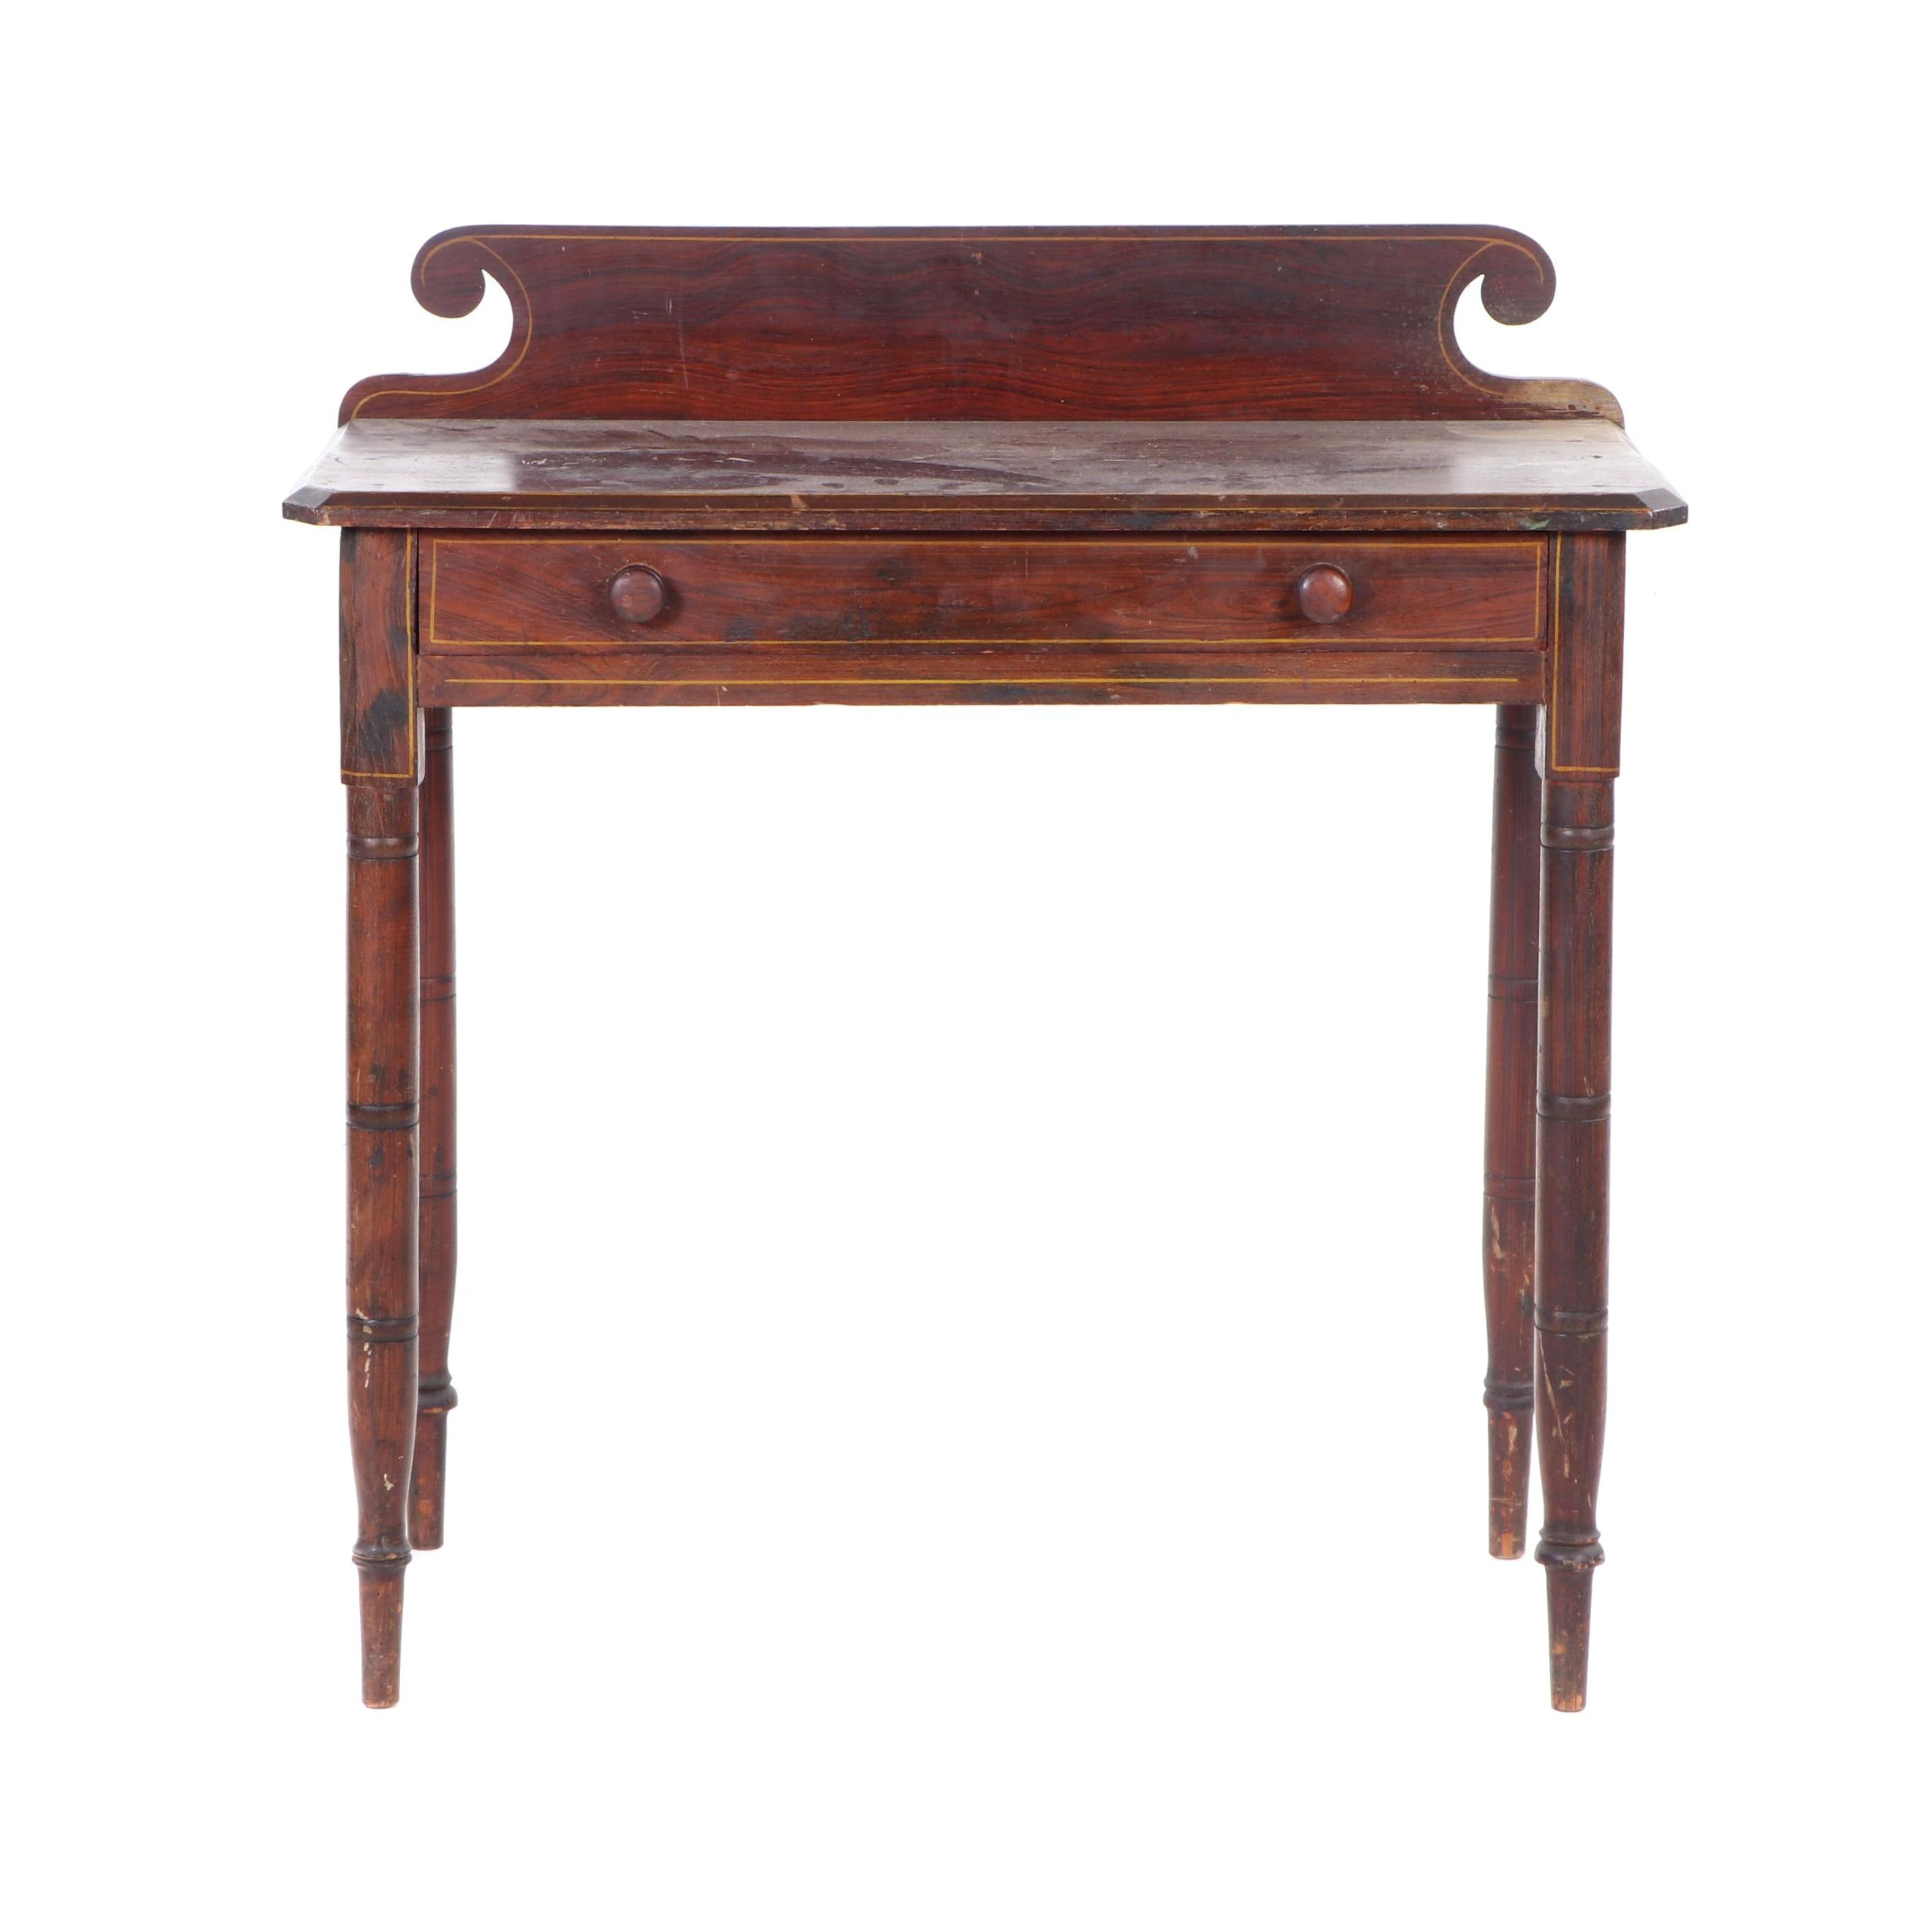 Late Federal Grain-Painted Writing Table, Circa 1820